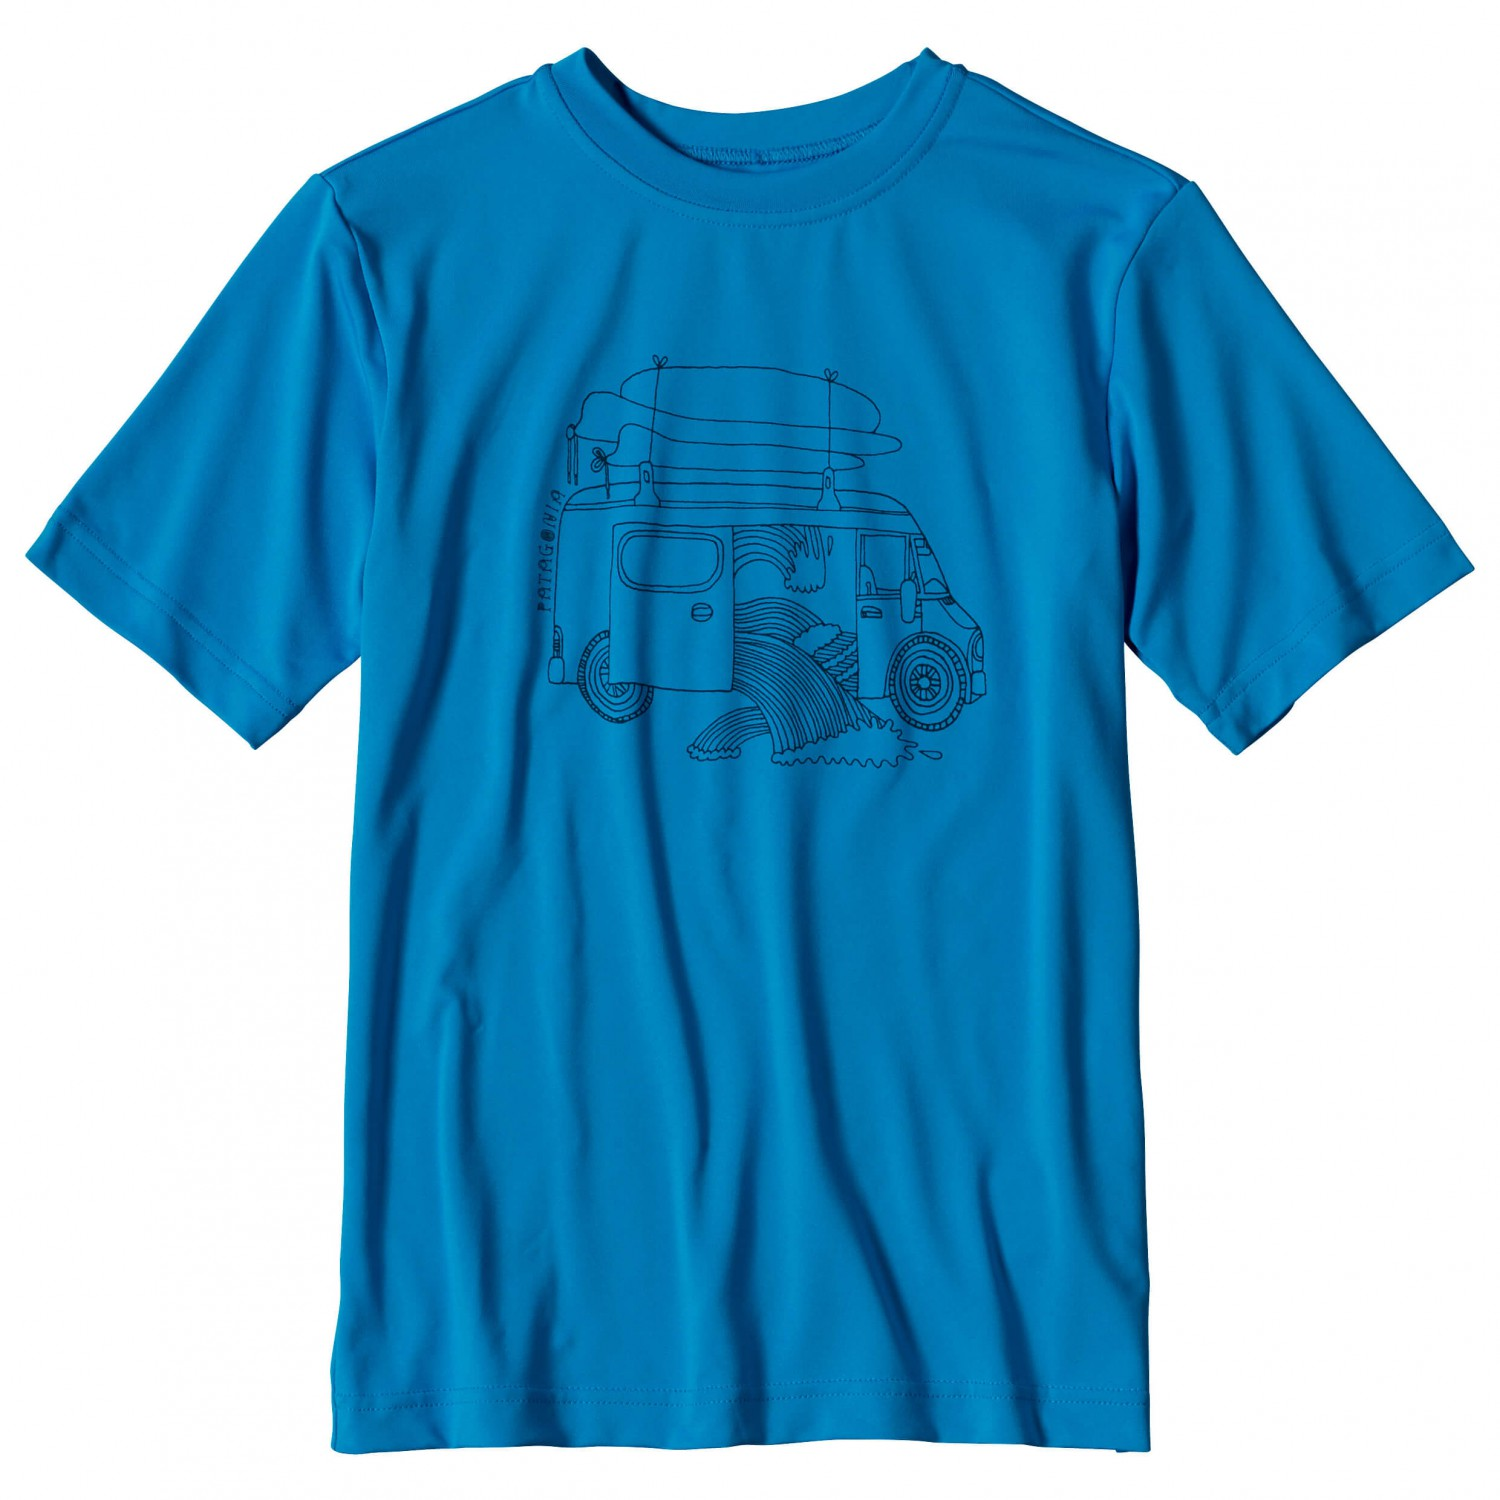 Patagonia Capilene Silkweight Graphic Tee T Shirt Boys